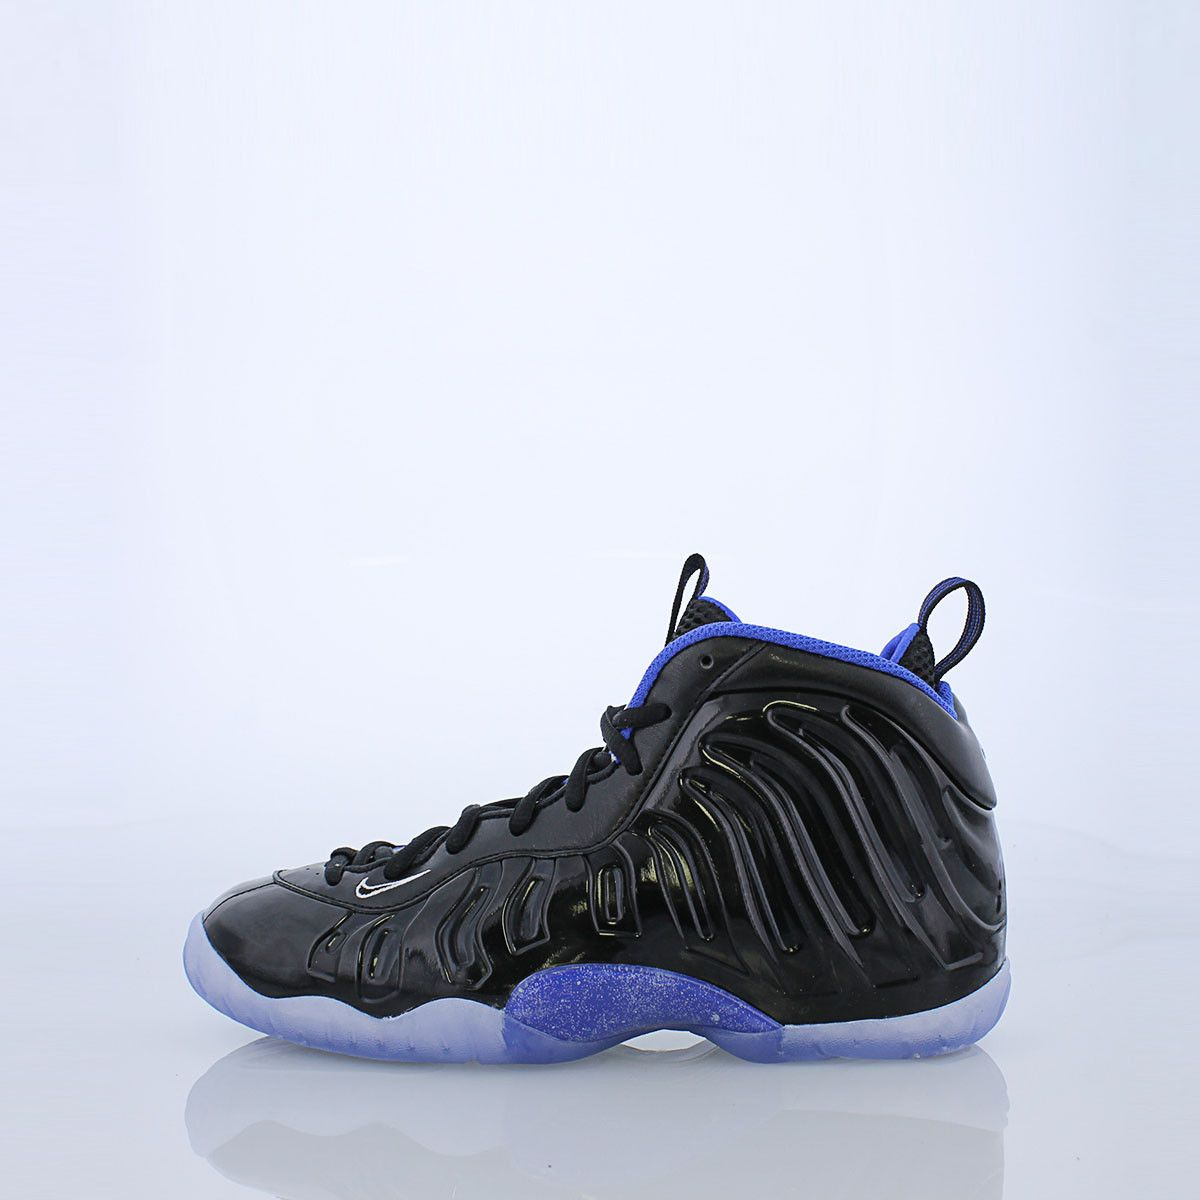 Nike Navy Blue Gum Bottom Foamposite One Thangz Gucci ...